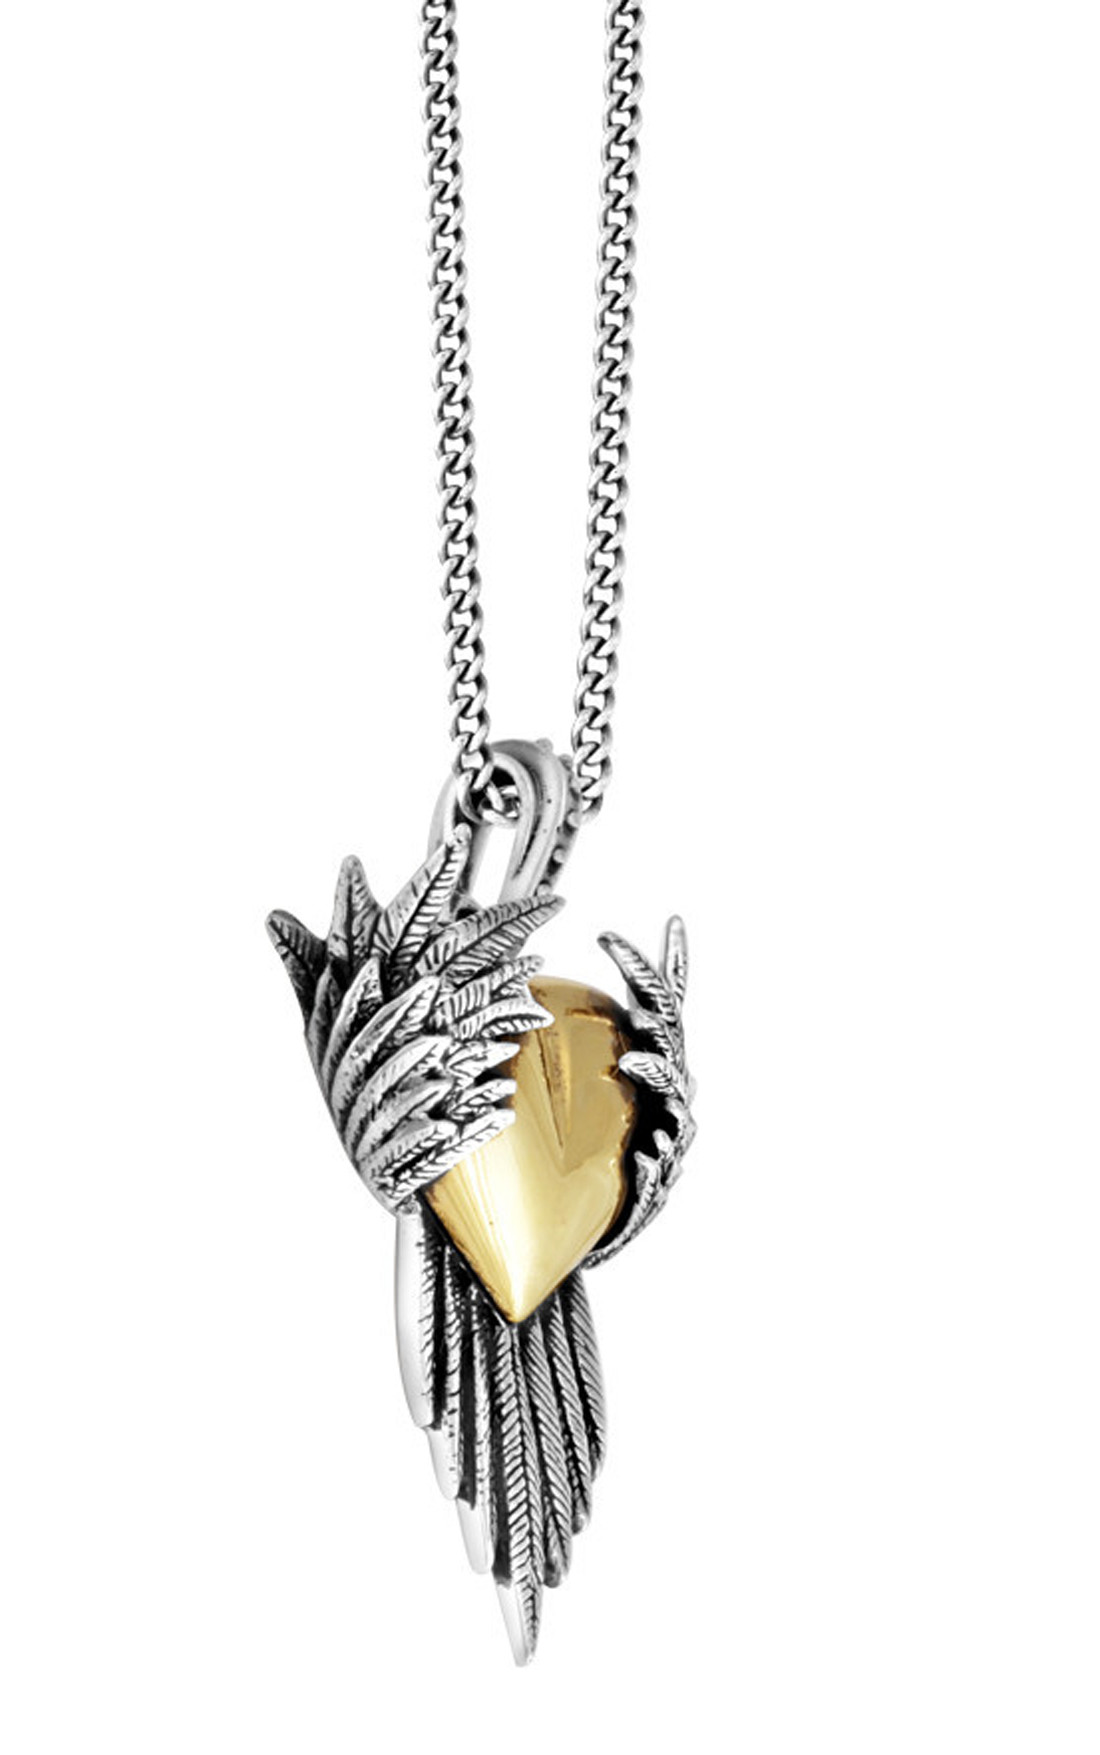 Queen Baby - Alloy Heart Pendant with Silver Raven Wings (K10-5516)